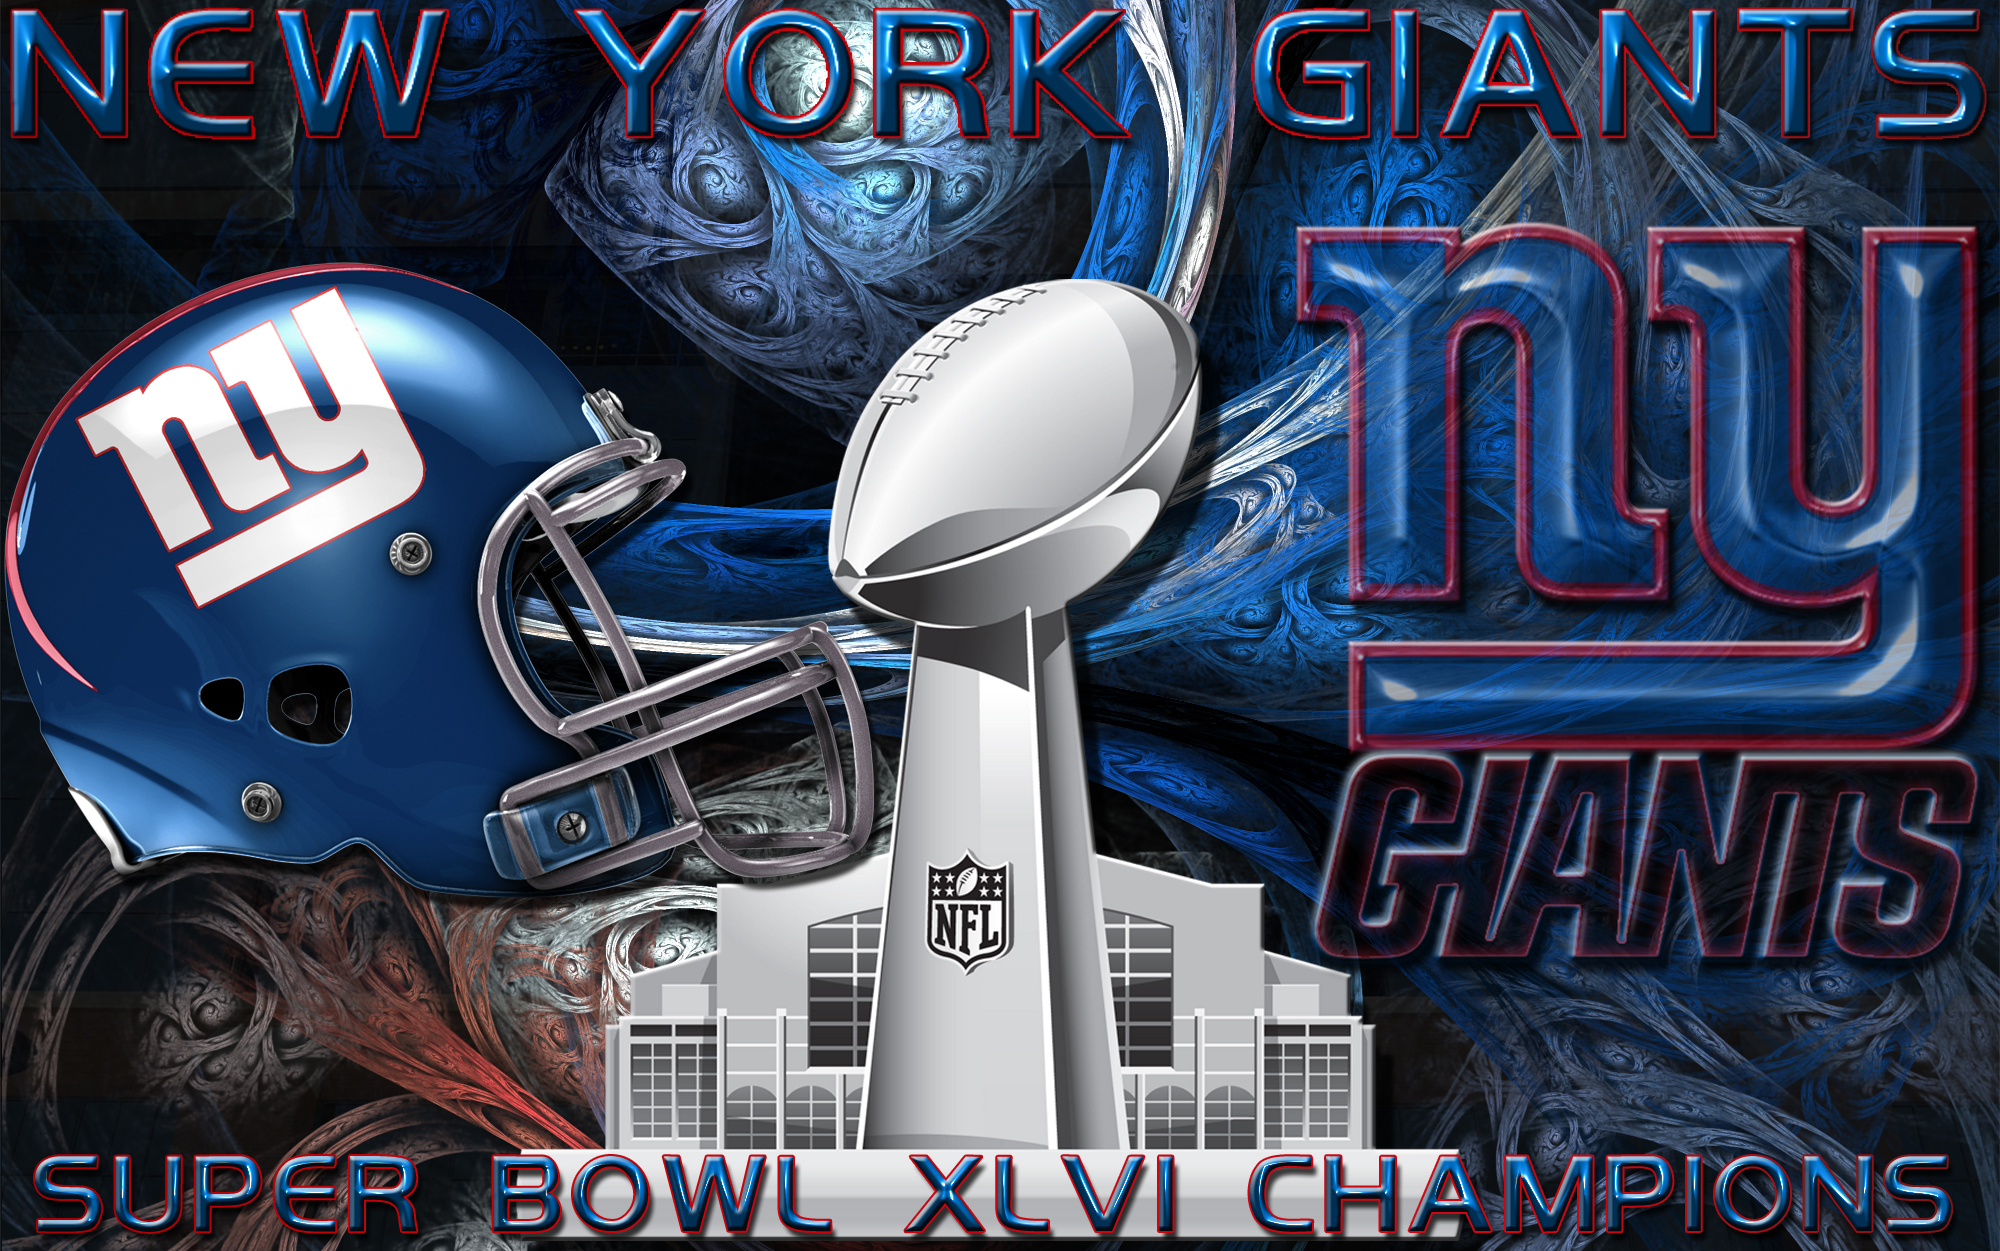 New York Giants Super Bowl XLVI Champions Wallpaper